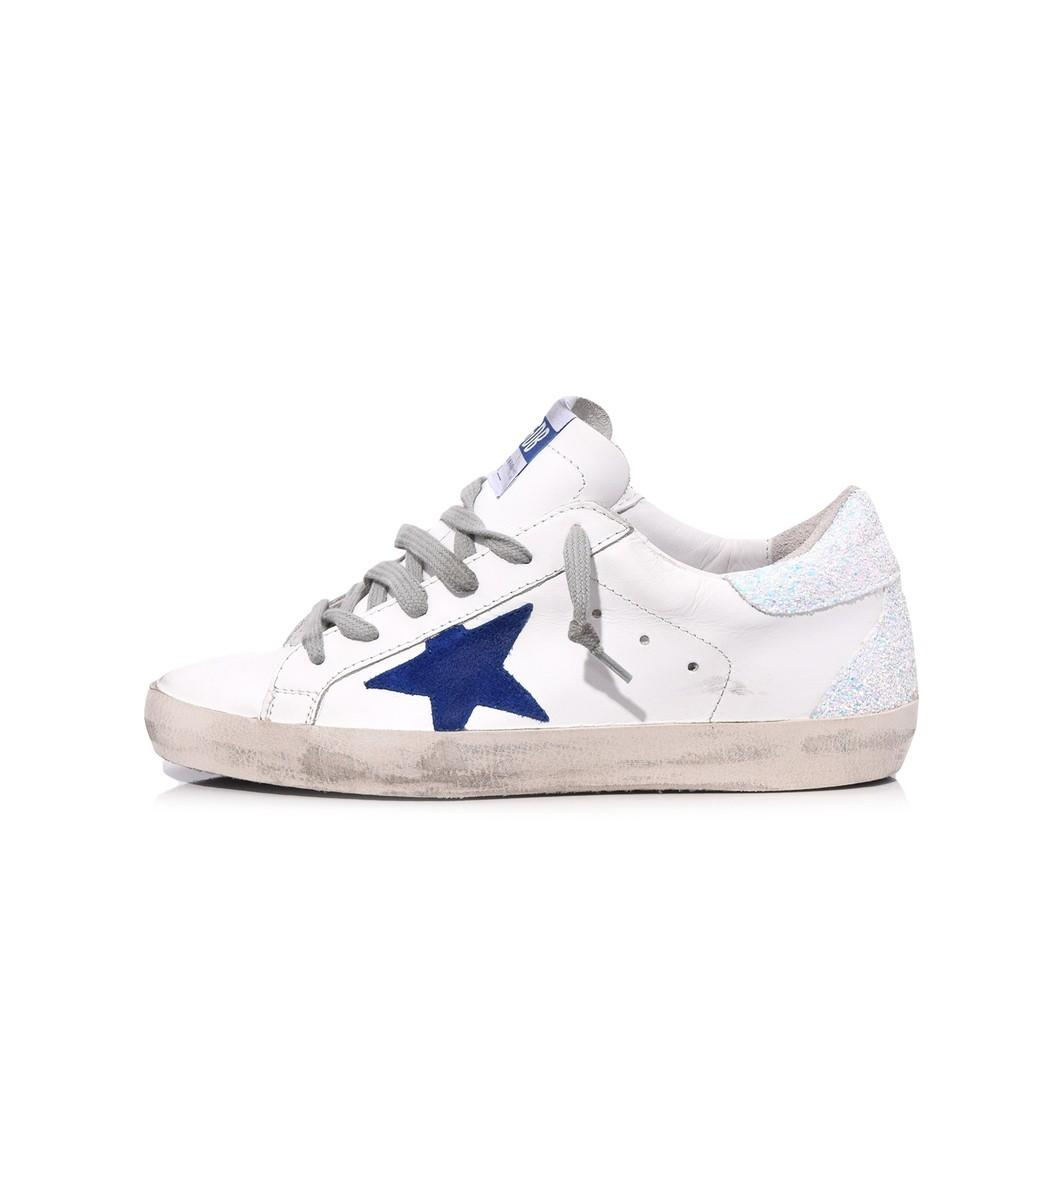 128771614927 Golden Goose Superstar Sneaker In White Iridescent Blue Star